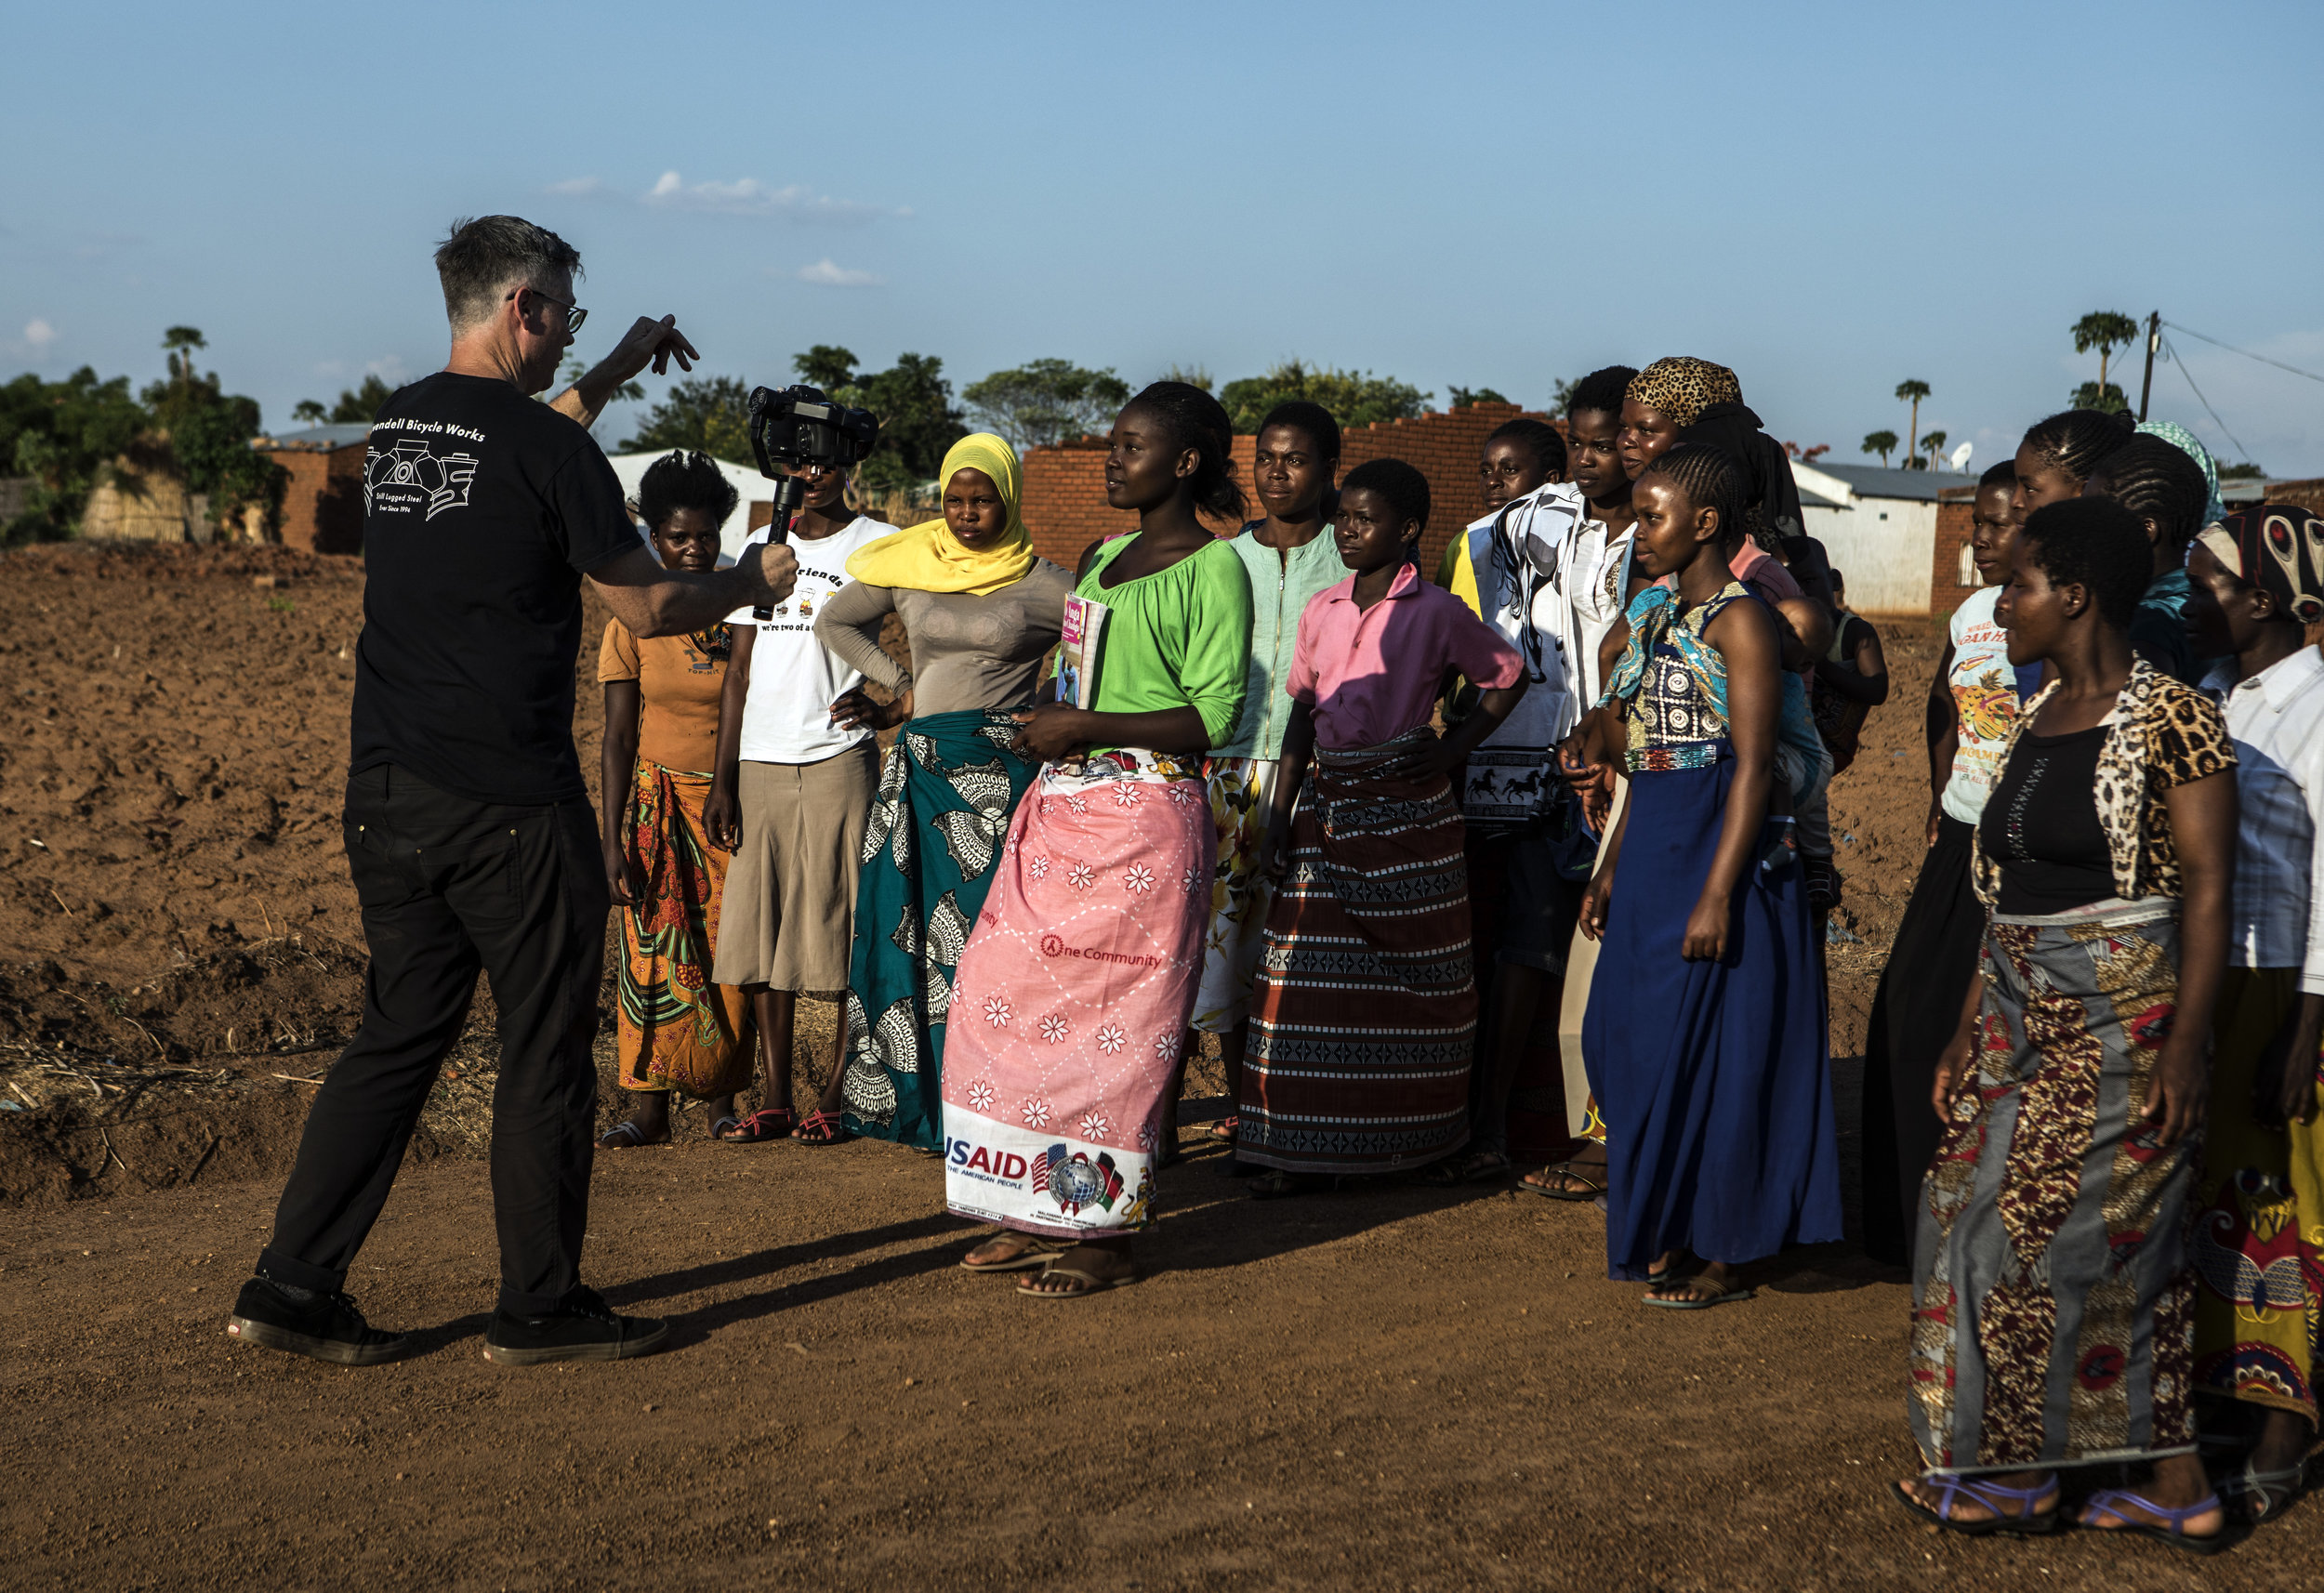 """NSANAMA, MACHINGA DISTRICT, MALAWI: Nov. 14, 2017 - The Determined, Resilient, Empowered, AIDS-free, Mentored and Safe (DREAMS) initiative is an ambitious $385 million partnership to reduce HIV infection among adolescent girls and young women (AGYW) in HIV priority areas within 10 sub-Saharan African countries that account for nearly half of the new HIV infections that occur among AGYW globally in 2014. While the main goal of the DREAMS initiative is to keep AGYW AIDS-free, the benefits of core package go well beyond the disease. DREAMS upon the USAID decades of experience empowering young women and advancing gender equality across sectors of global health, education, and economic growth, USAID partners with community, faith-based, and non-governmental organizations whose credibility within communities and capacity to mobilize significant numbers of volunteers allow USAID to address the structural inequalities impacting girls vulnerability across multiple areas. Maggie Medison, 18, who lives in Malawi, dropped out of school in 2015 because she became pregnant. In 2015, Maggie was recruited into One Community's Go Girls! Club. She later applied to be a Community Resource Person (CRP) to supervise the club. She has now become an active peer educator, a choice that has changed the course of her life. Maggie works with girls in her community to raise awareness about the importance of remaining in school and protecting ones self against HIV.""""After I fell pregnant and had my baby I thought that was the end of me. I didn't think I could do anything else in my life. But after joining the DREAMS program, I went back to school. And now I know that I can achieve whatever I want in my life."""" Maggie has both a bright outlook on her future and a realistic approach to life. She says, """"I want to be a role model for my daughter to follow."""" Photo by Sarah Grile."""